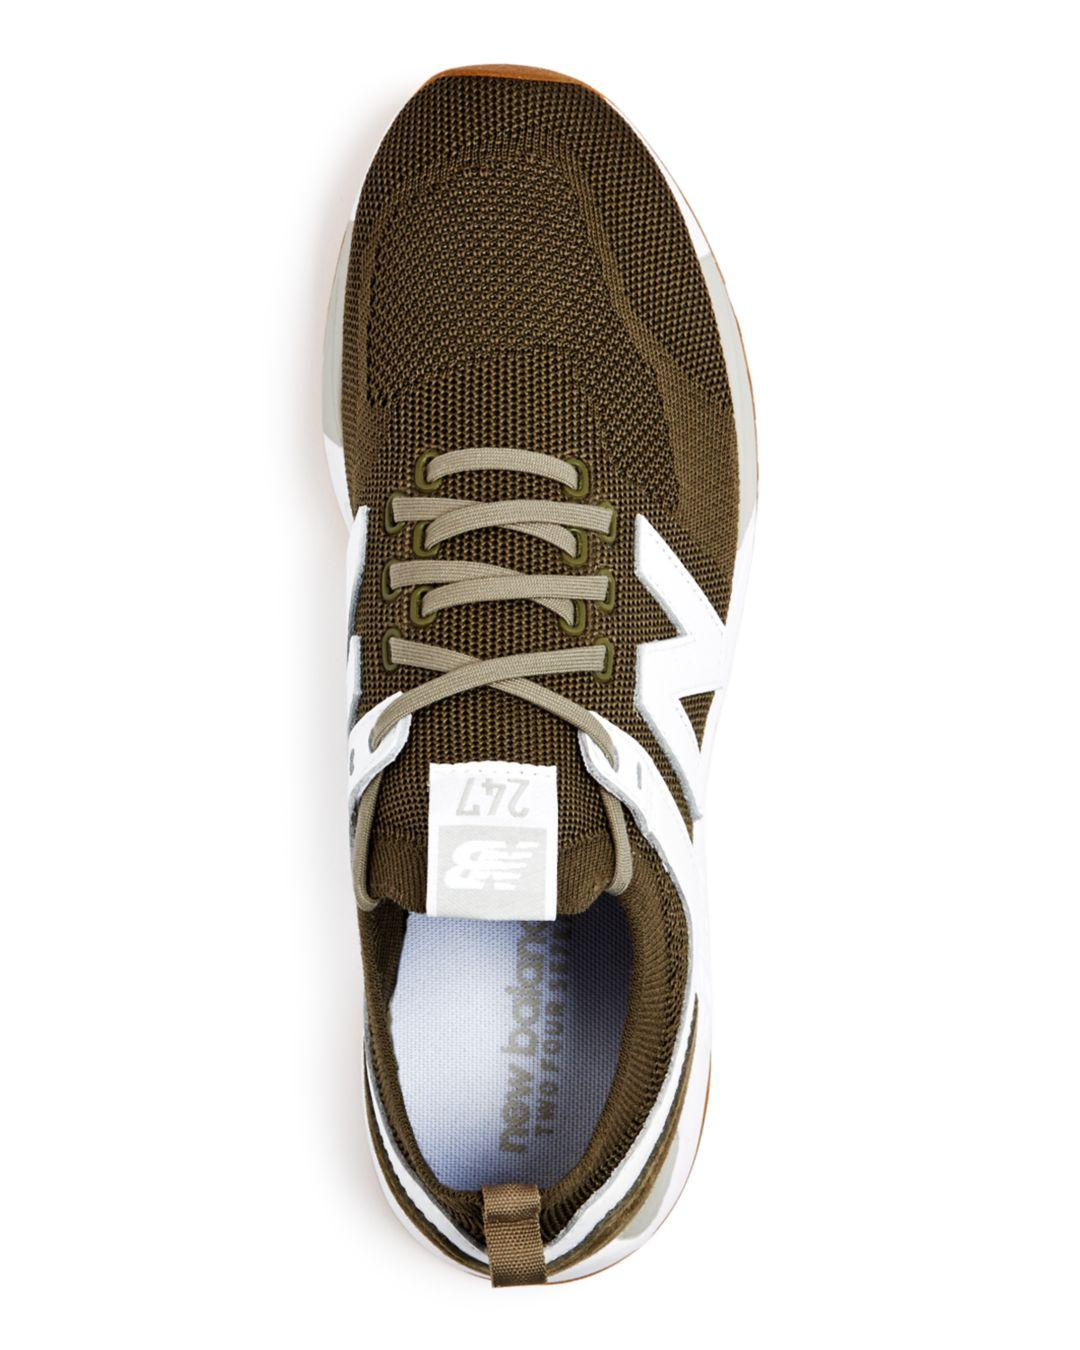 d2538951c4fb8 Lyst - New Balance Men's 247 Knit Lace Up Sneakers in Green for Men